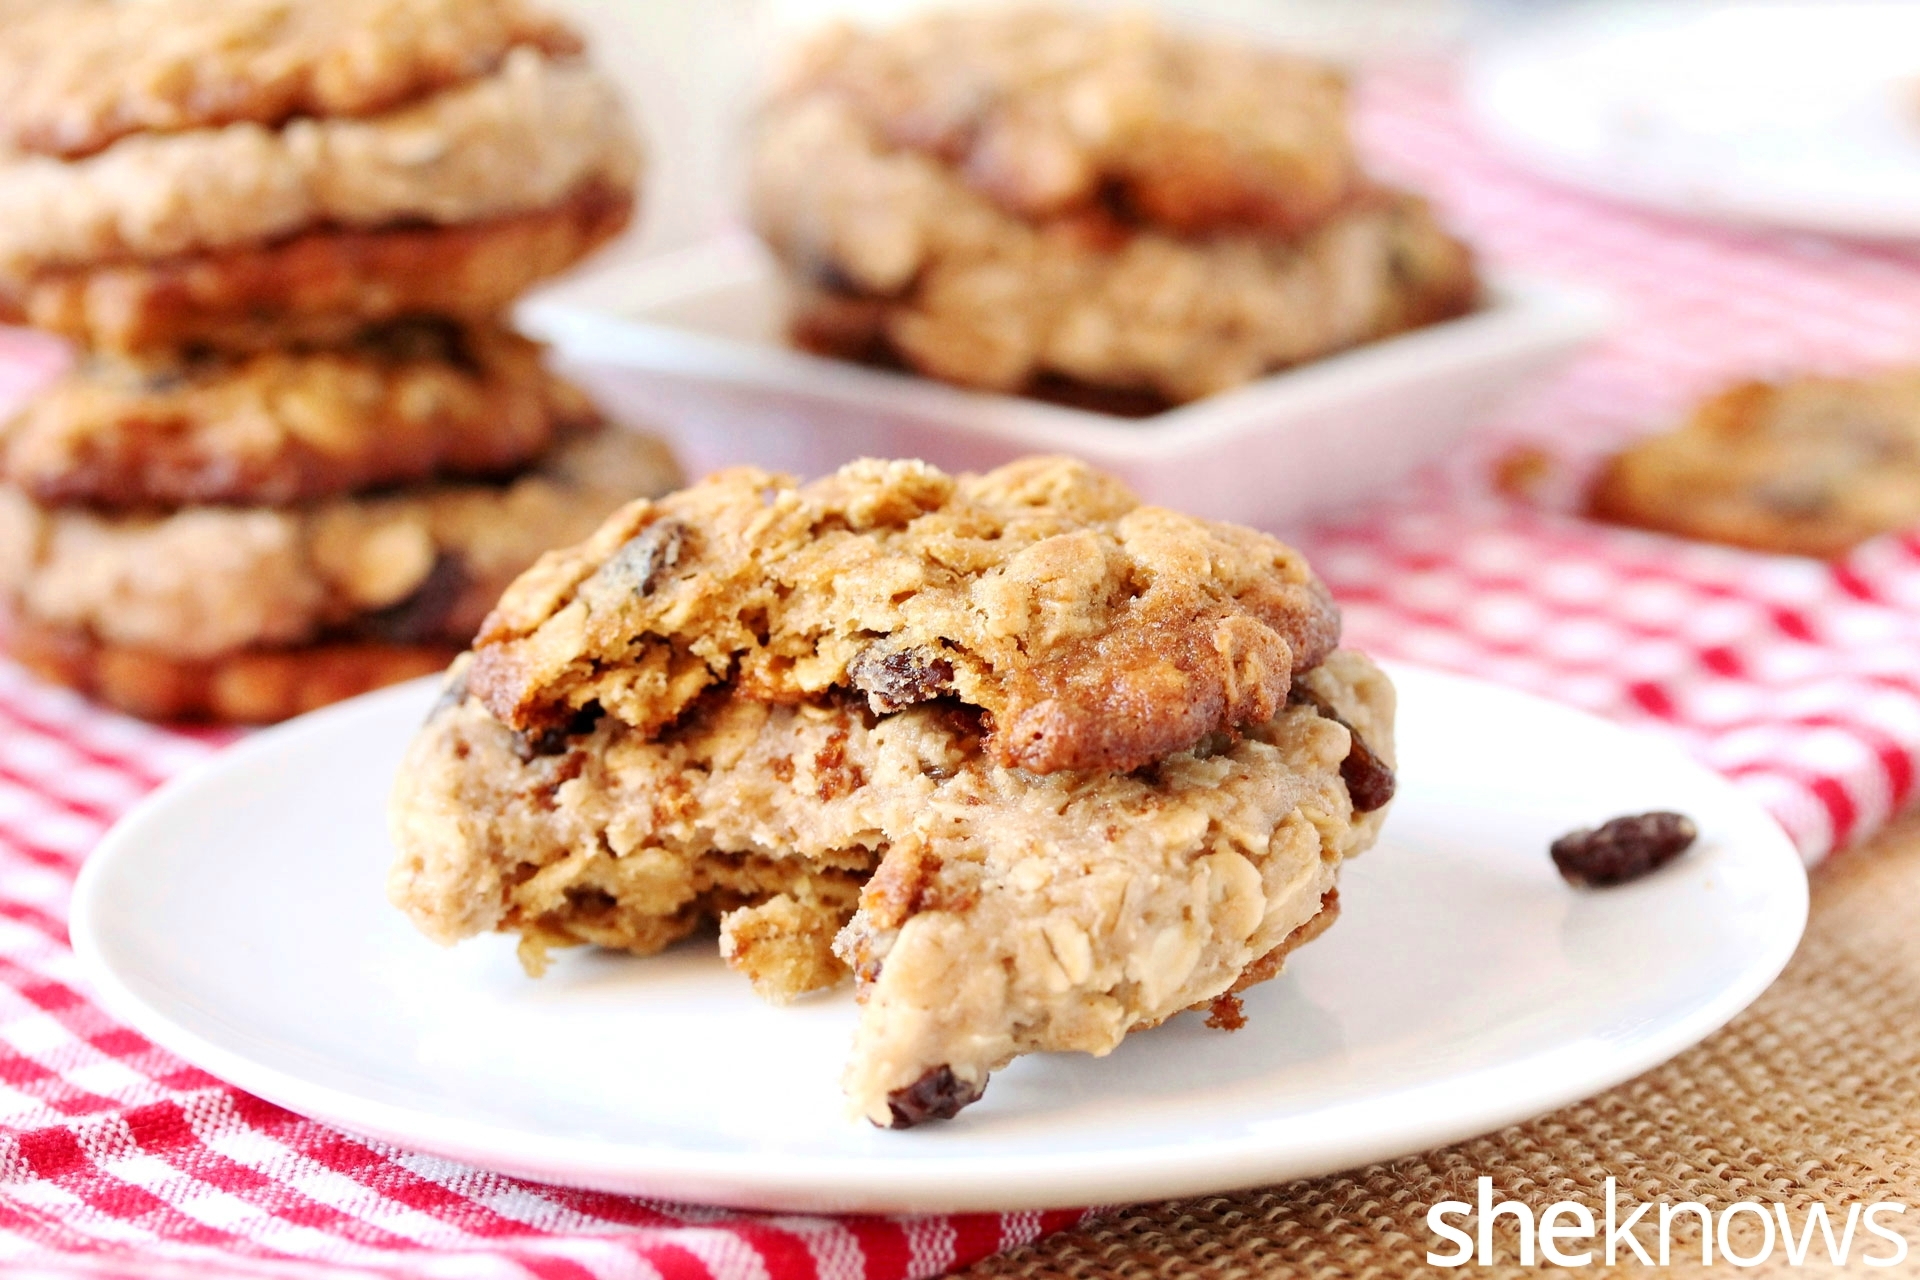 bite-of-oatmeal-cookie-dough